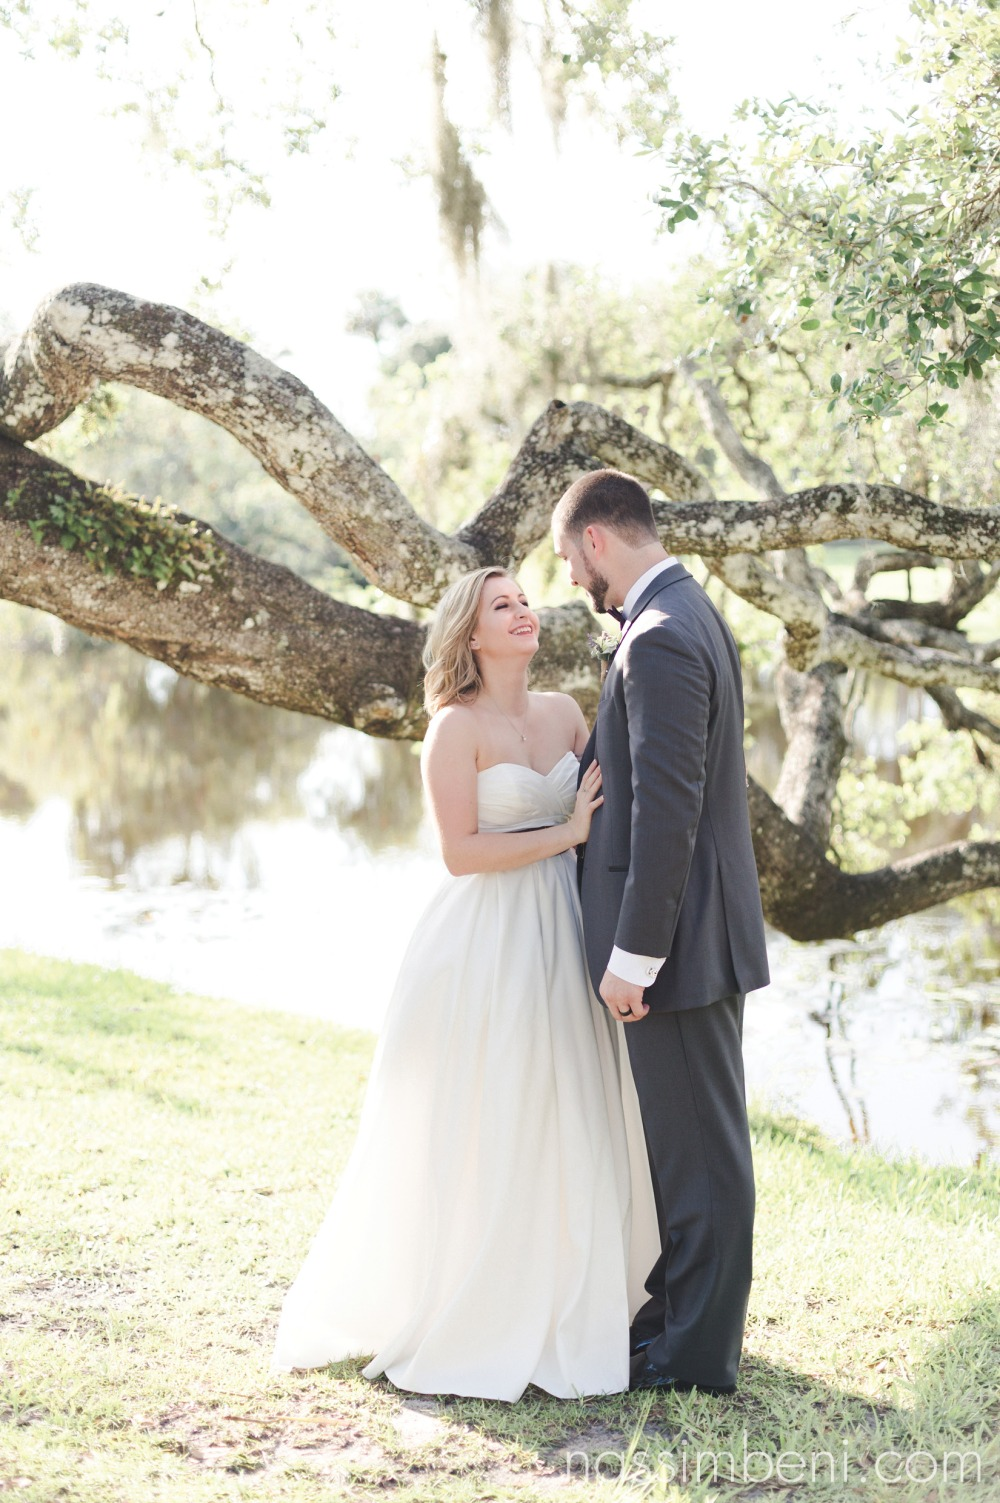 lavender-plum-and-forest-inspired-wedding-white-city-park-wedding-in-ft-pierce-florida-nassimbeni-photography-43